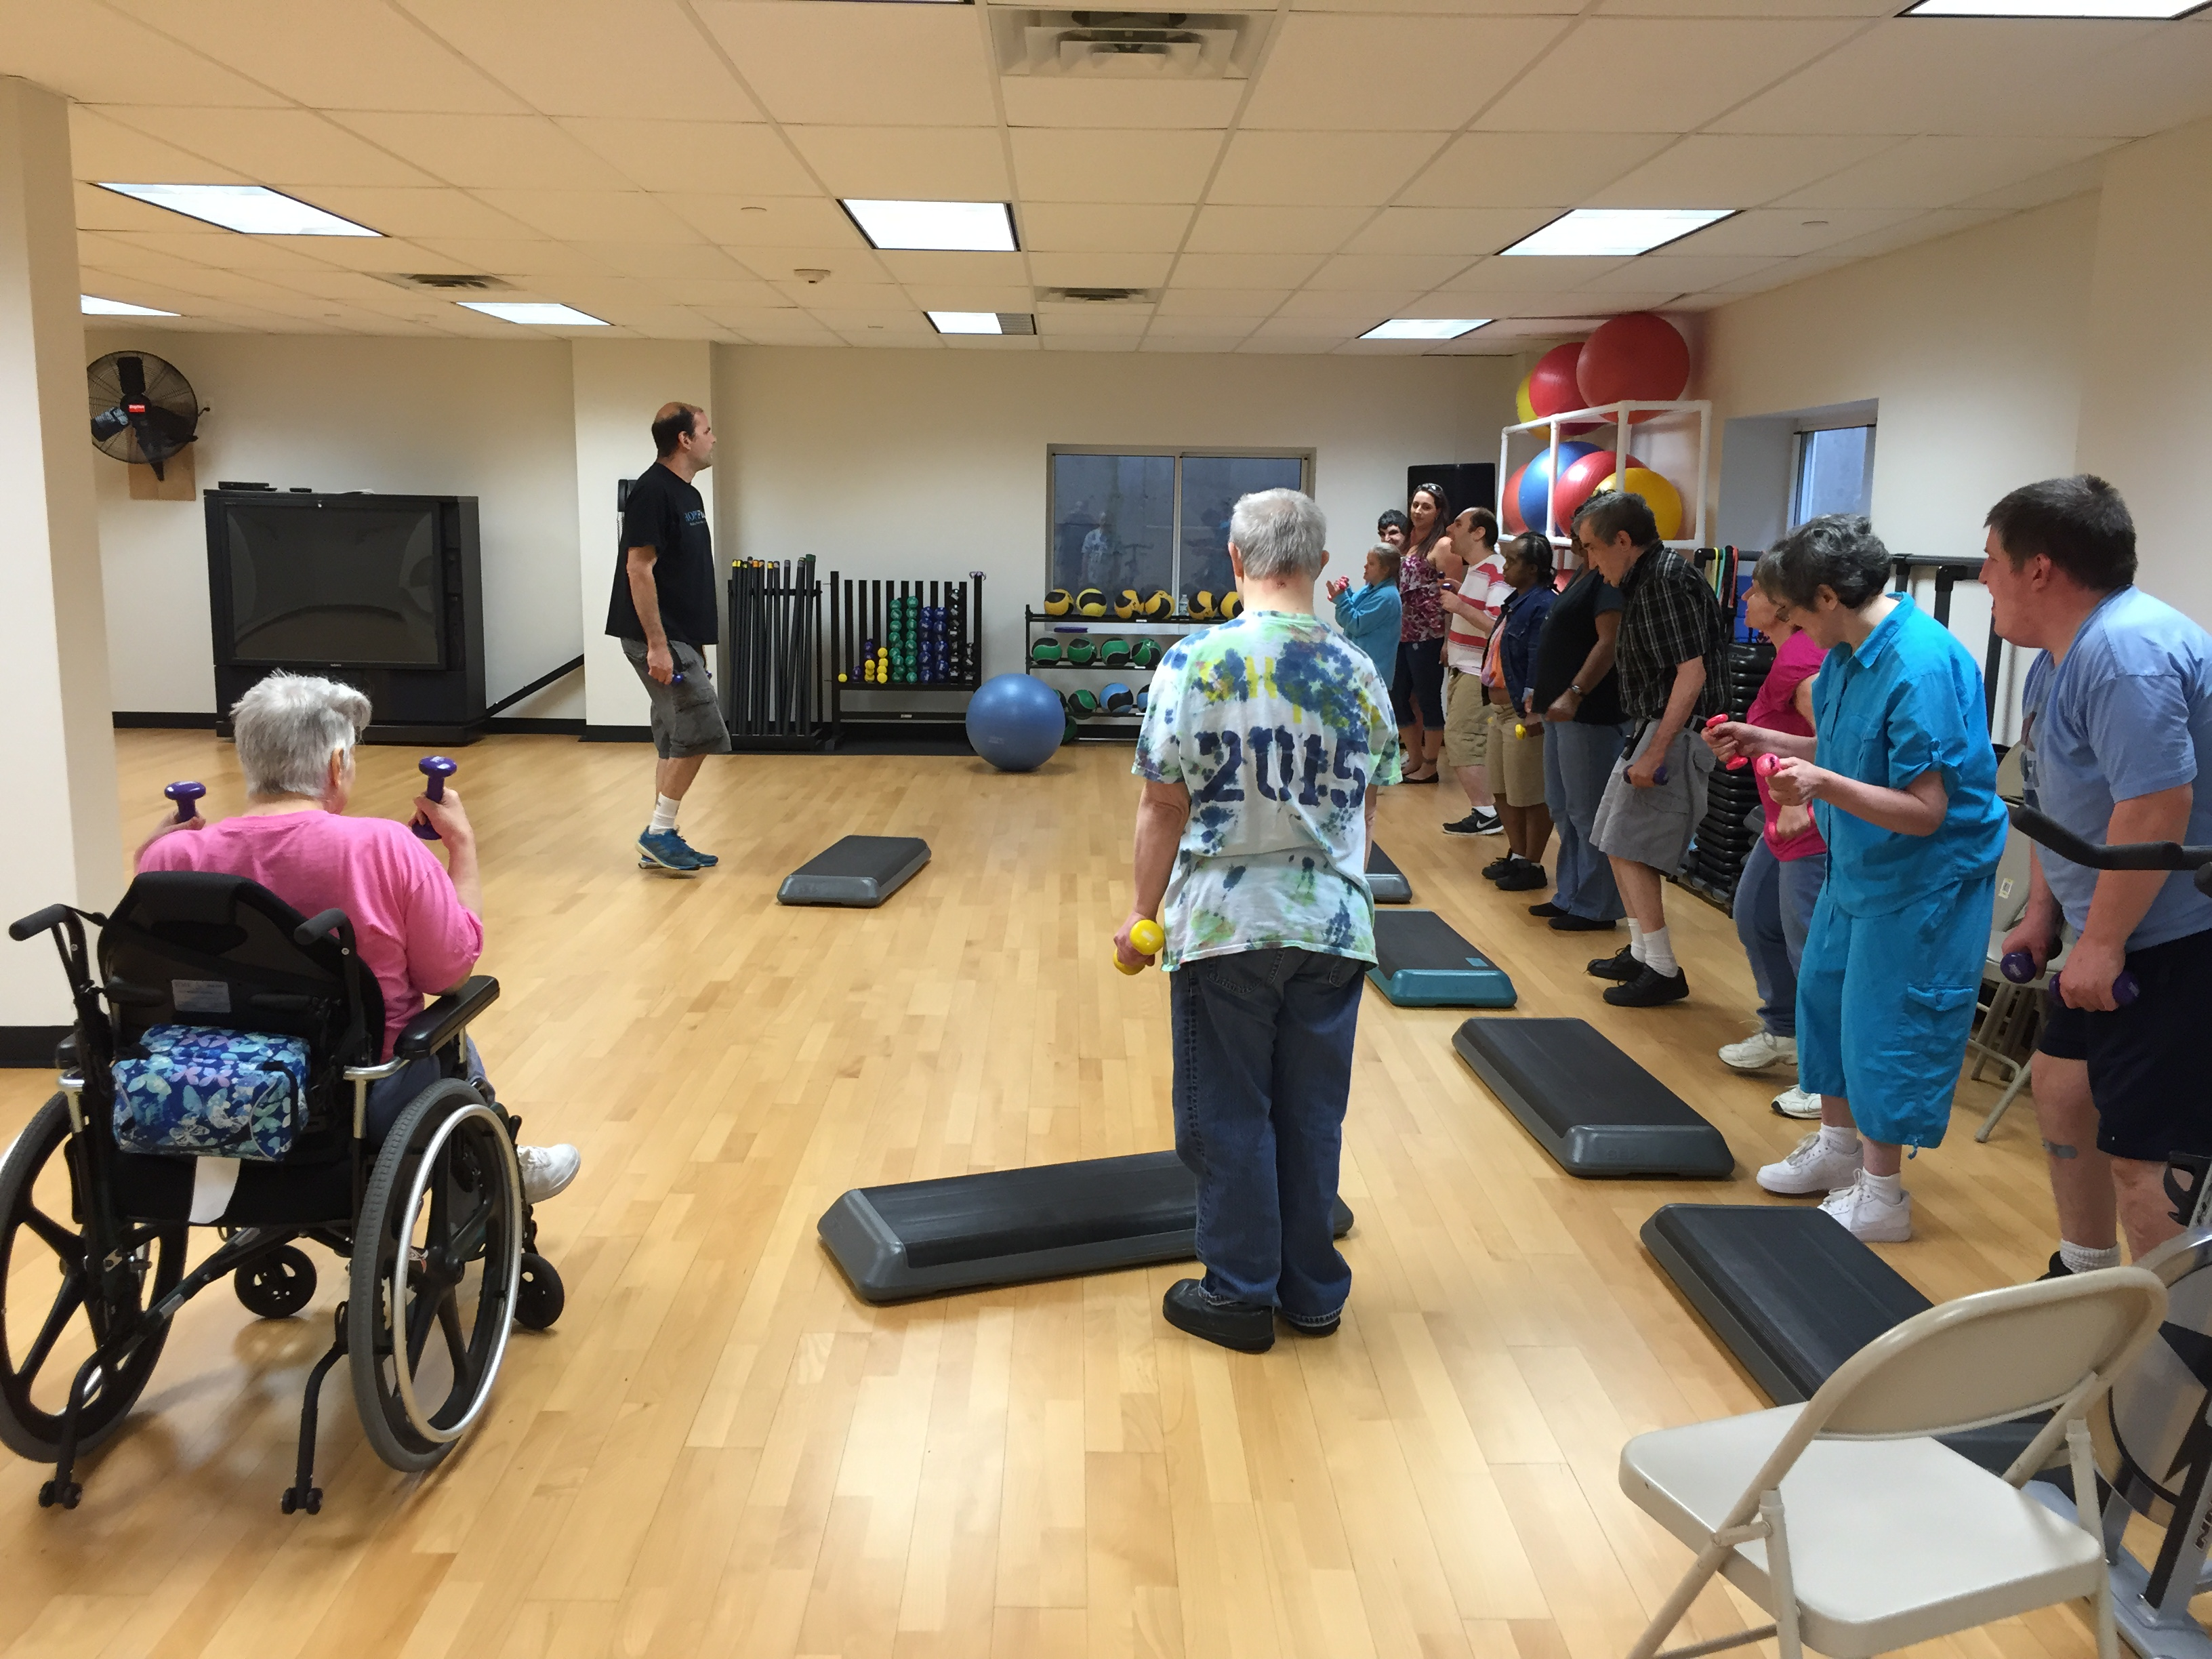 2015 07 09 001 2015 07 09 002 - Fitness Services